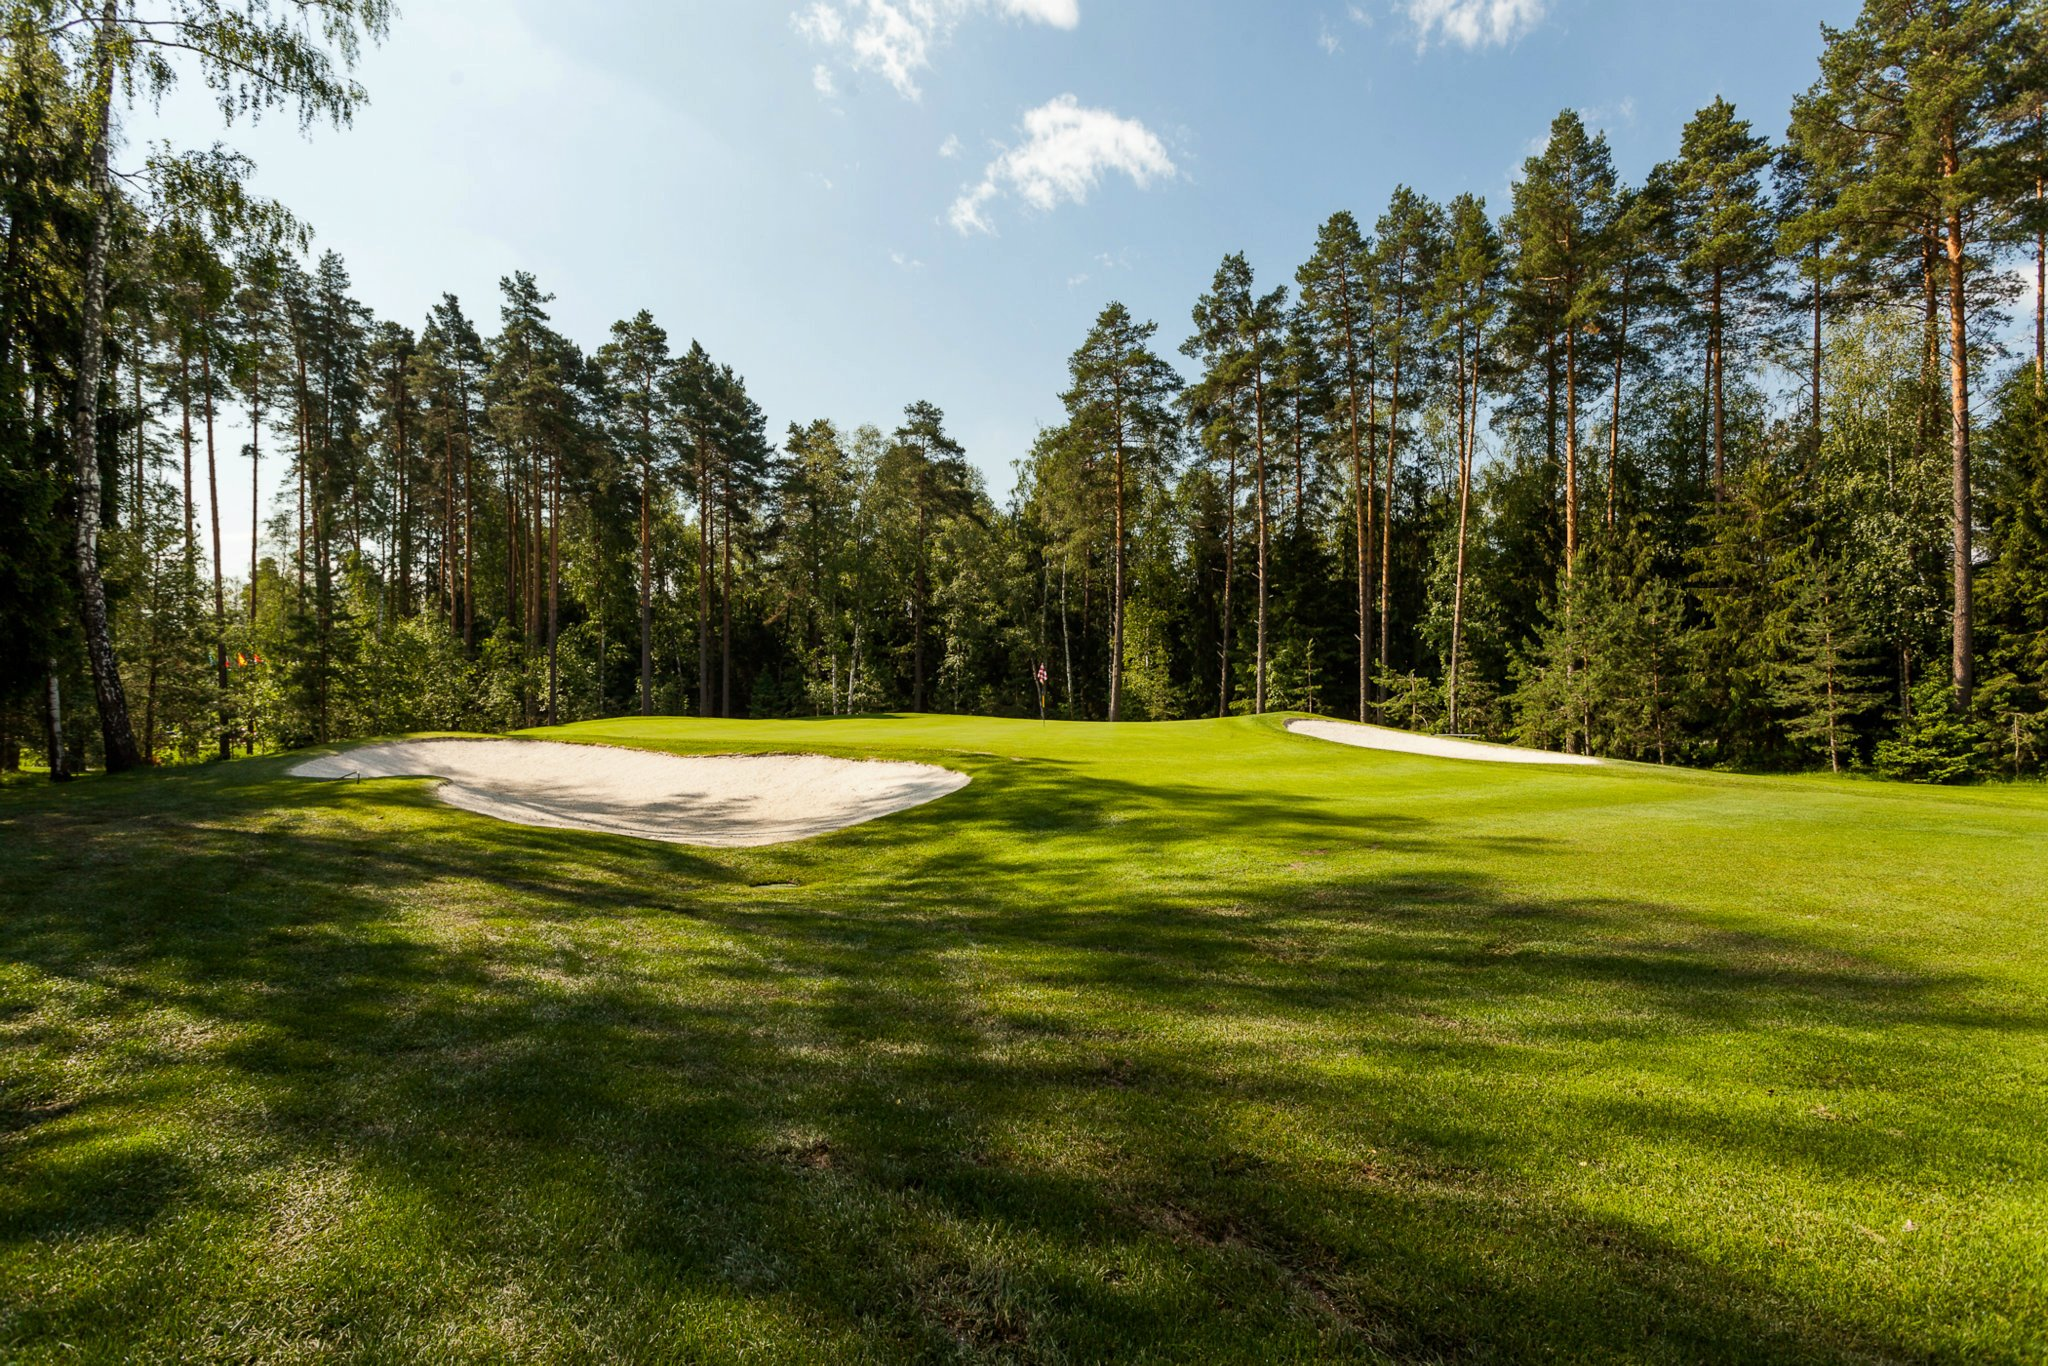 Overview of golf course named Moscow Country Club Golf Resort